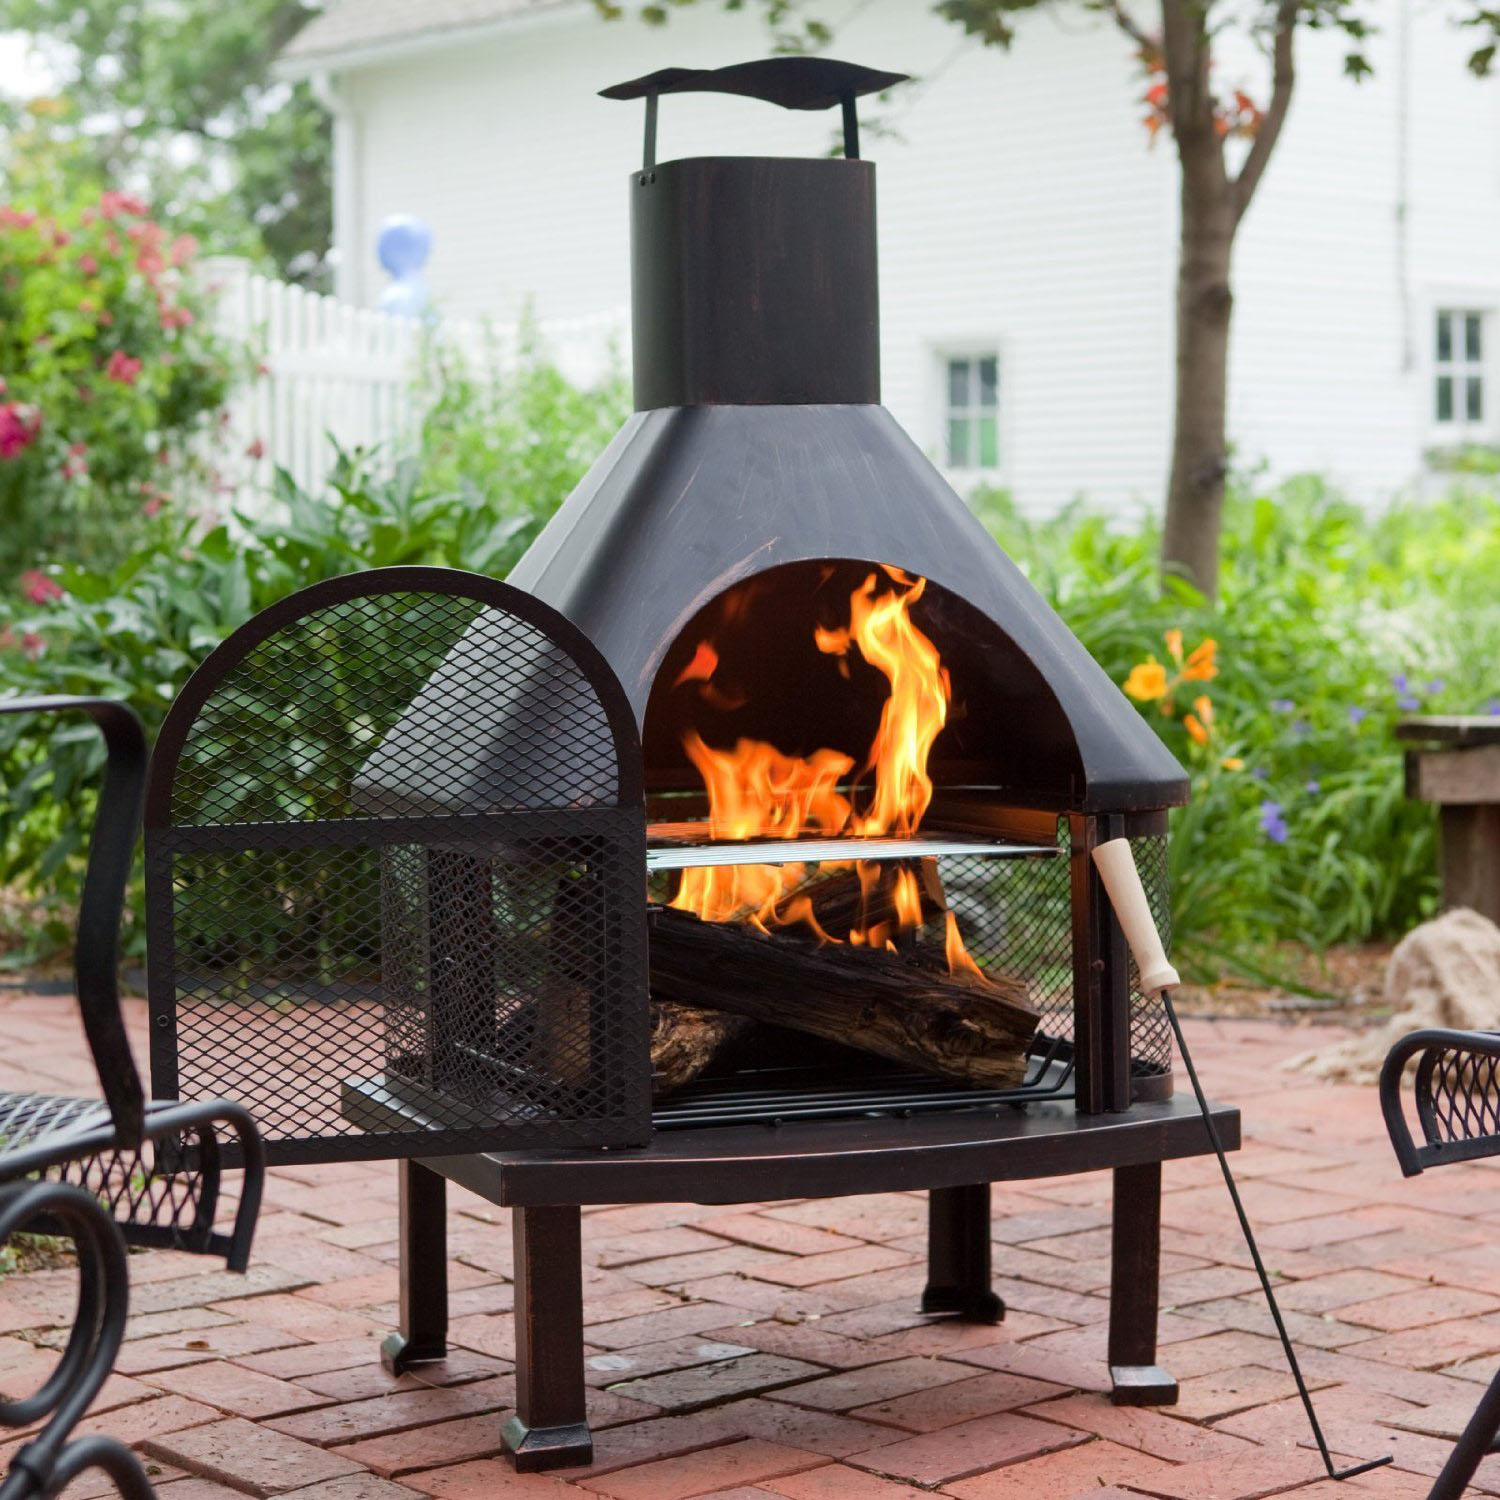 Outdoor Fire Pit Ideas For The Backyard  Home Decorator Shop